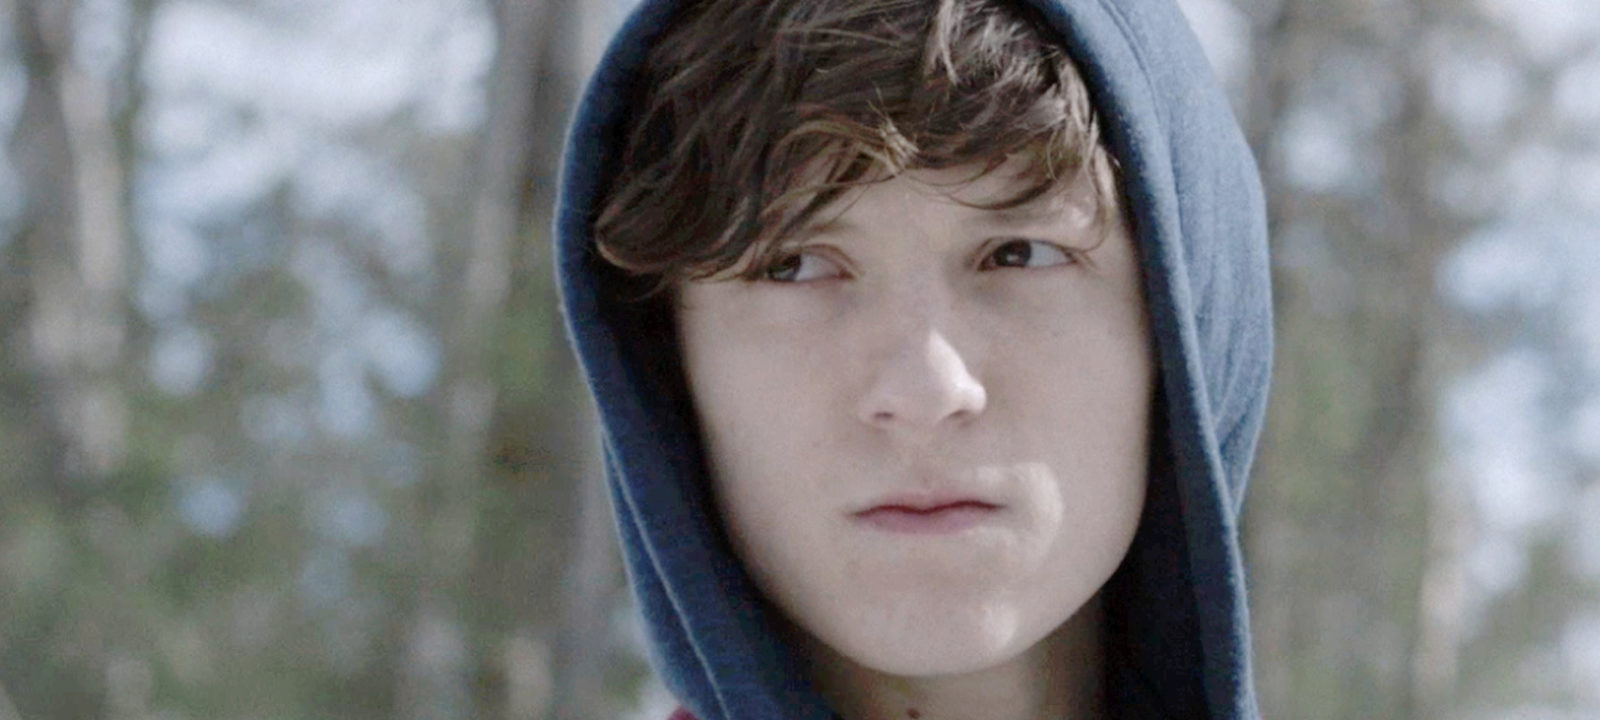 WATCH: Tom Holland Plays with Fire in 'Edge of Winter